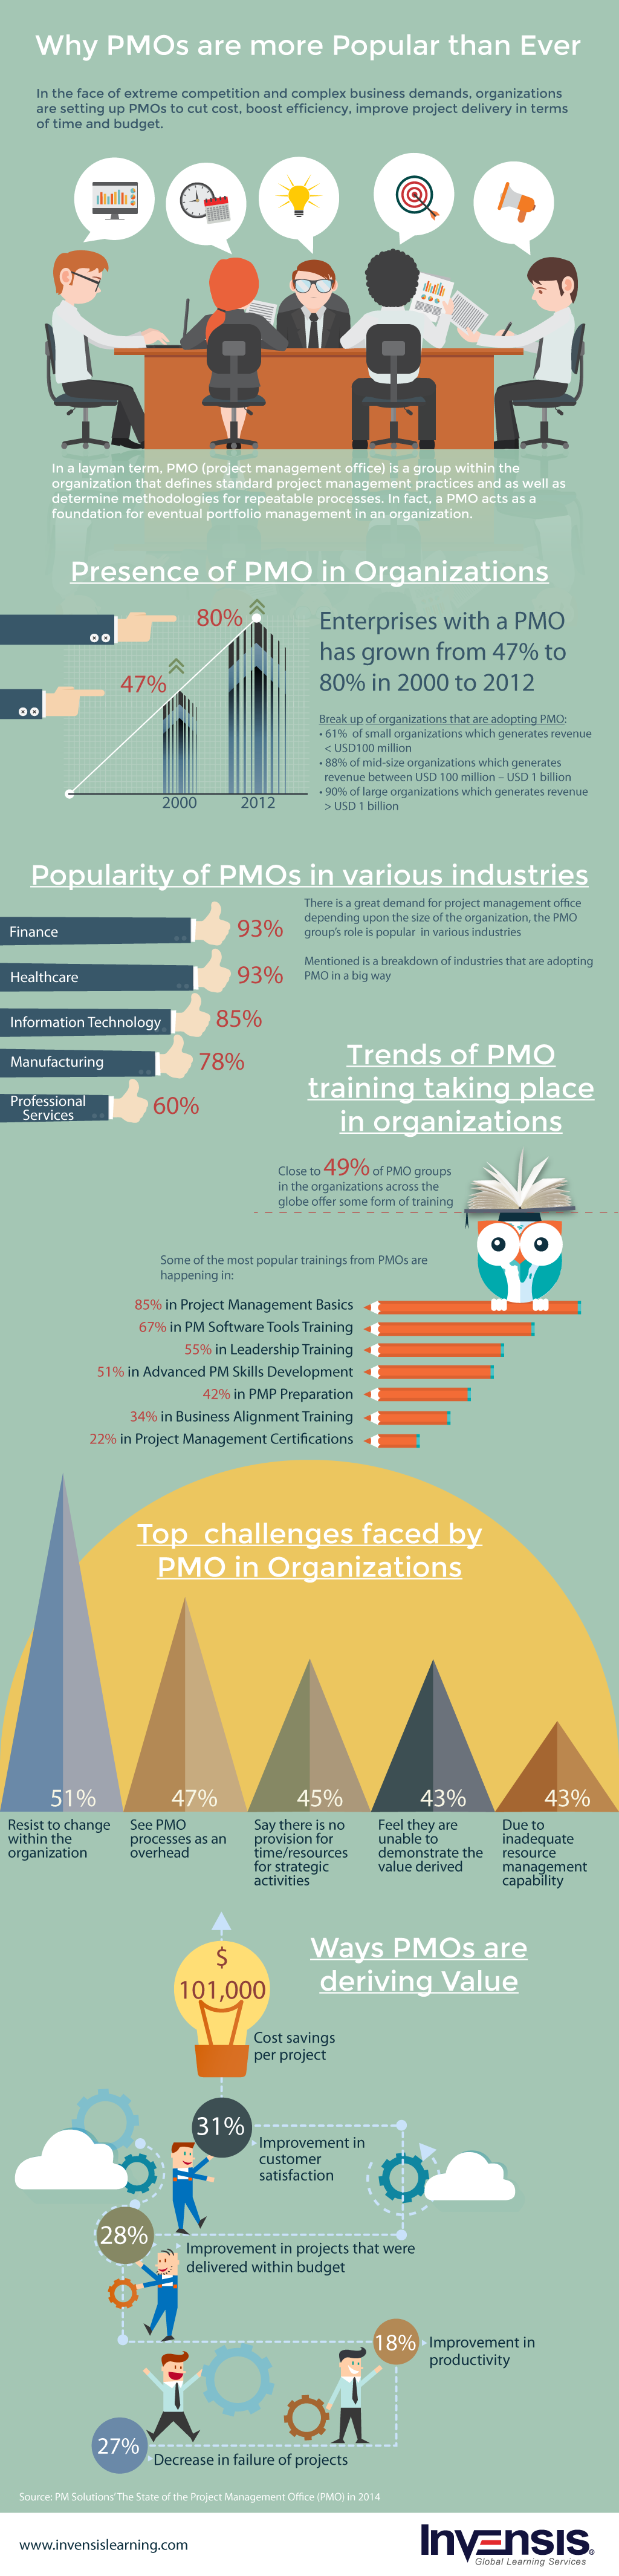 Why PMOs are more Popular than Ever